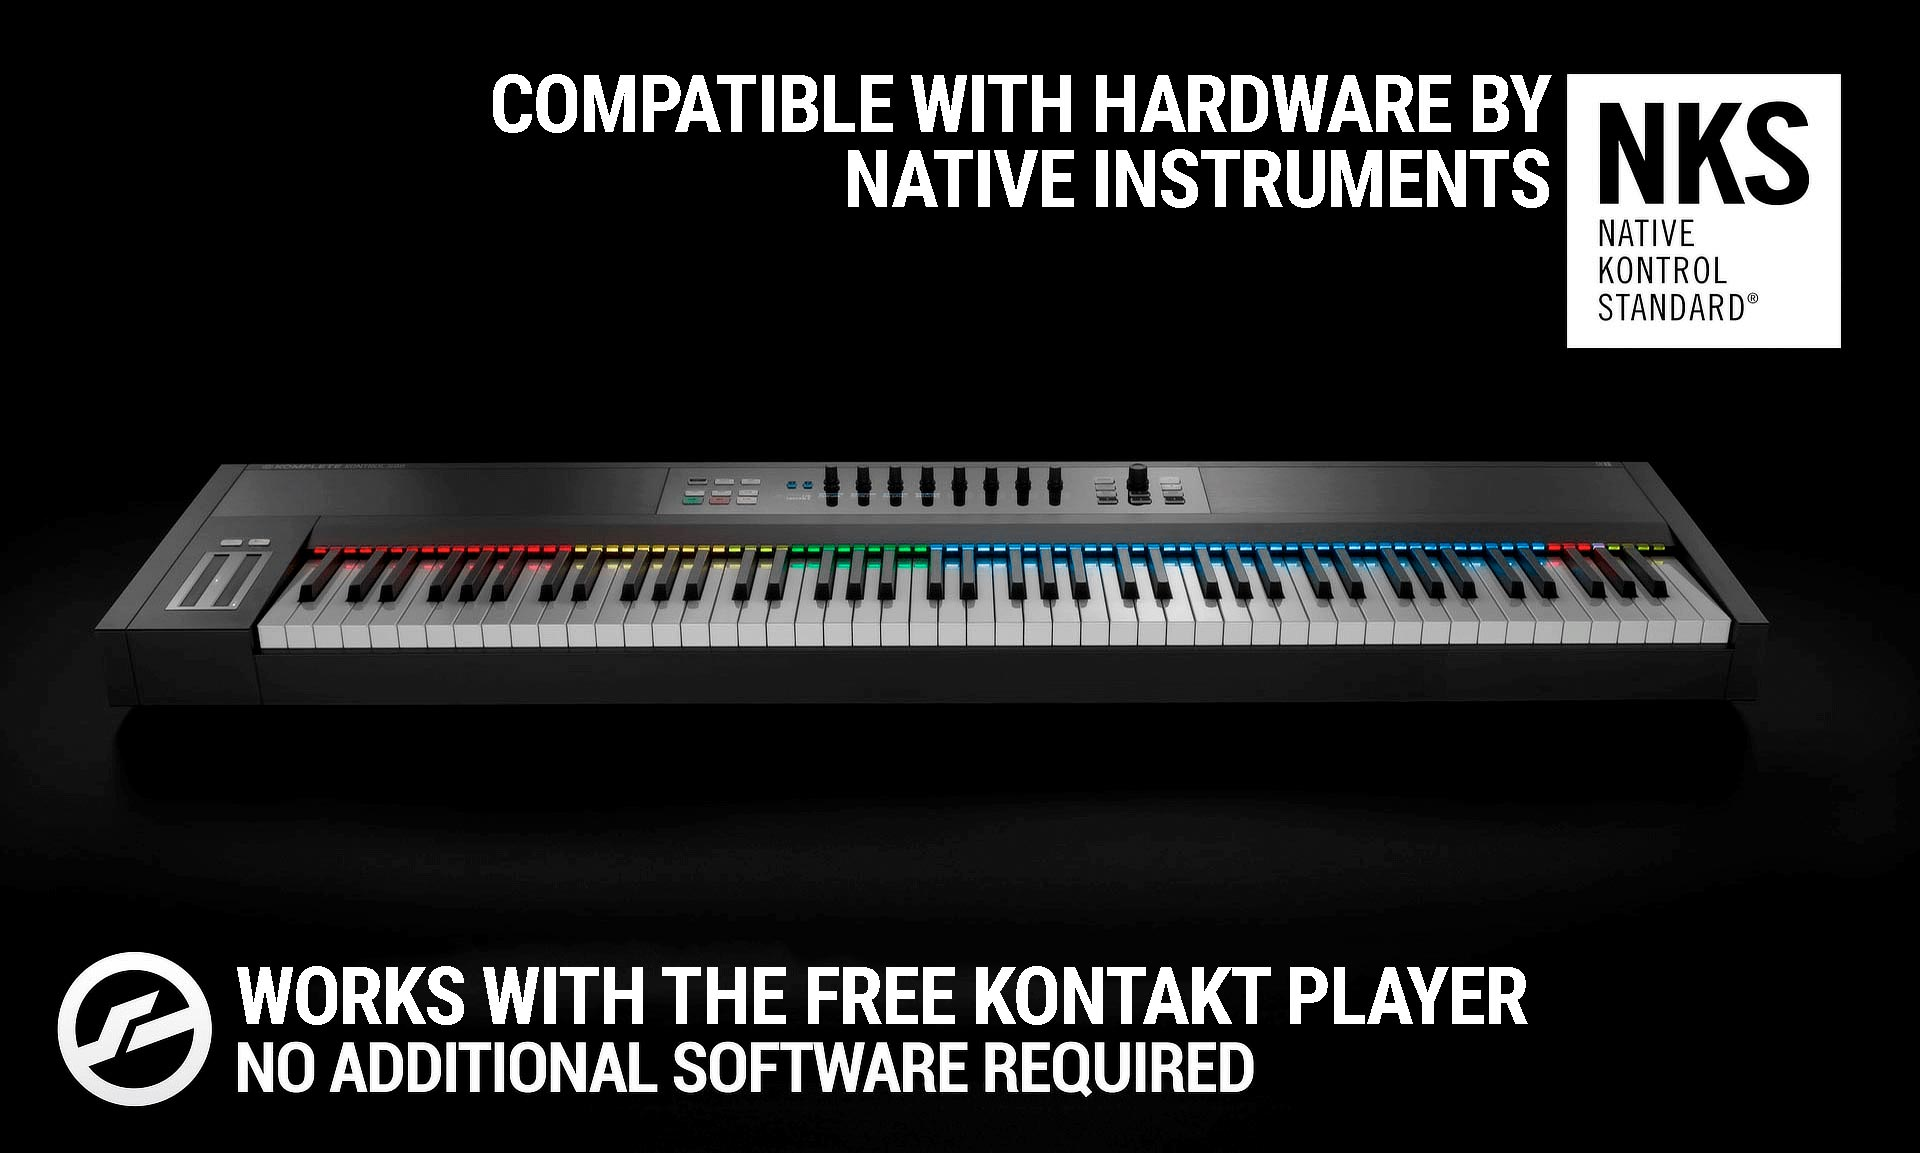 Native Kontrol Standard Ready - Works With the Free Kontakt Player